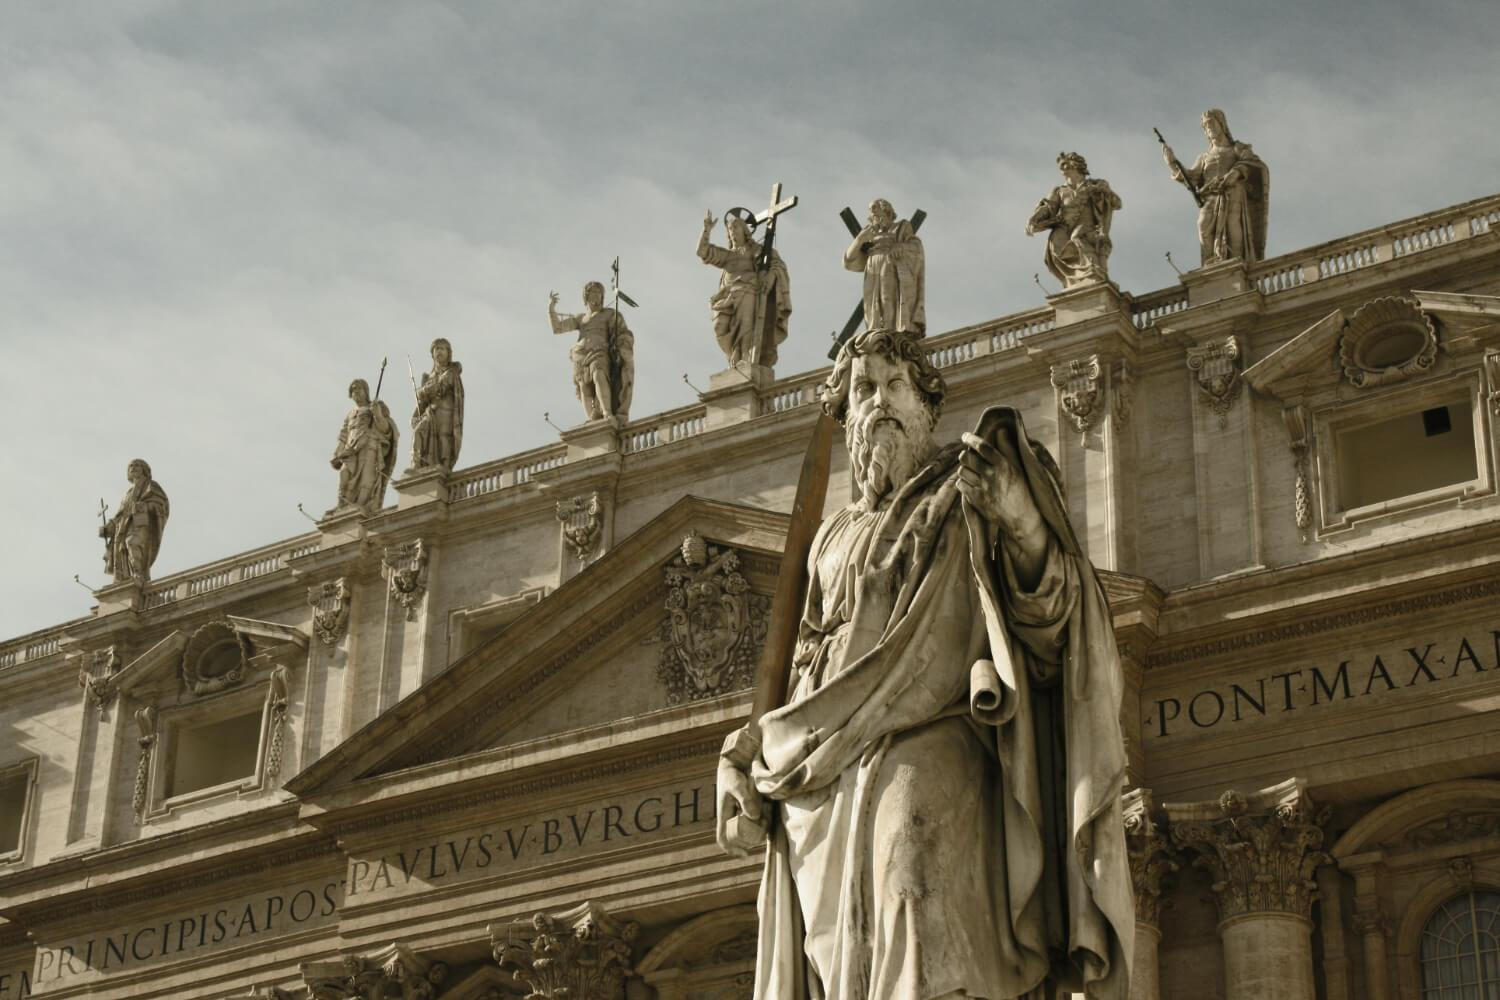 St. Paul and the Façade of St. Peter's Basilica